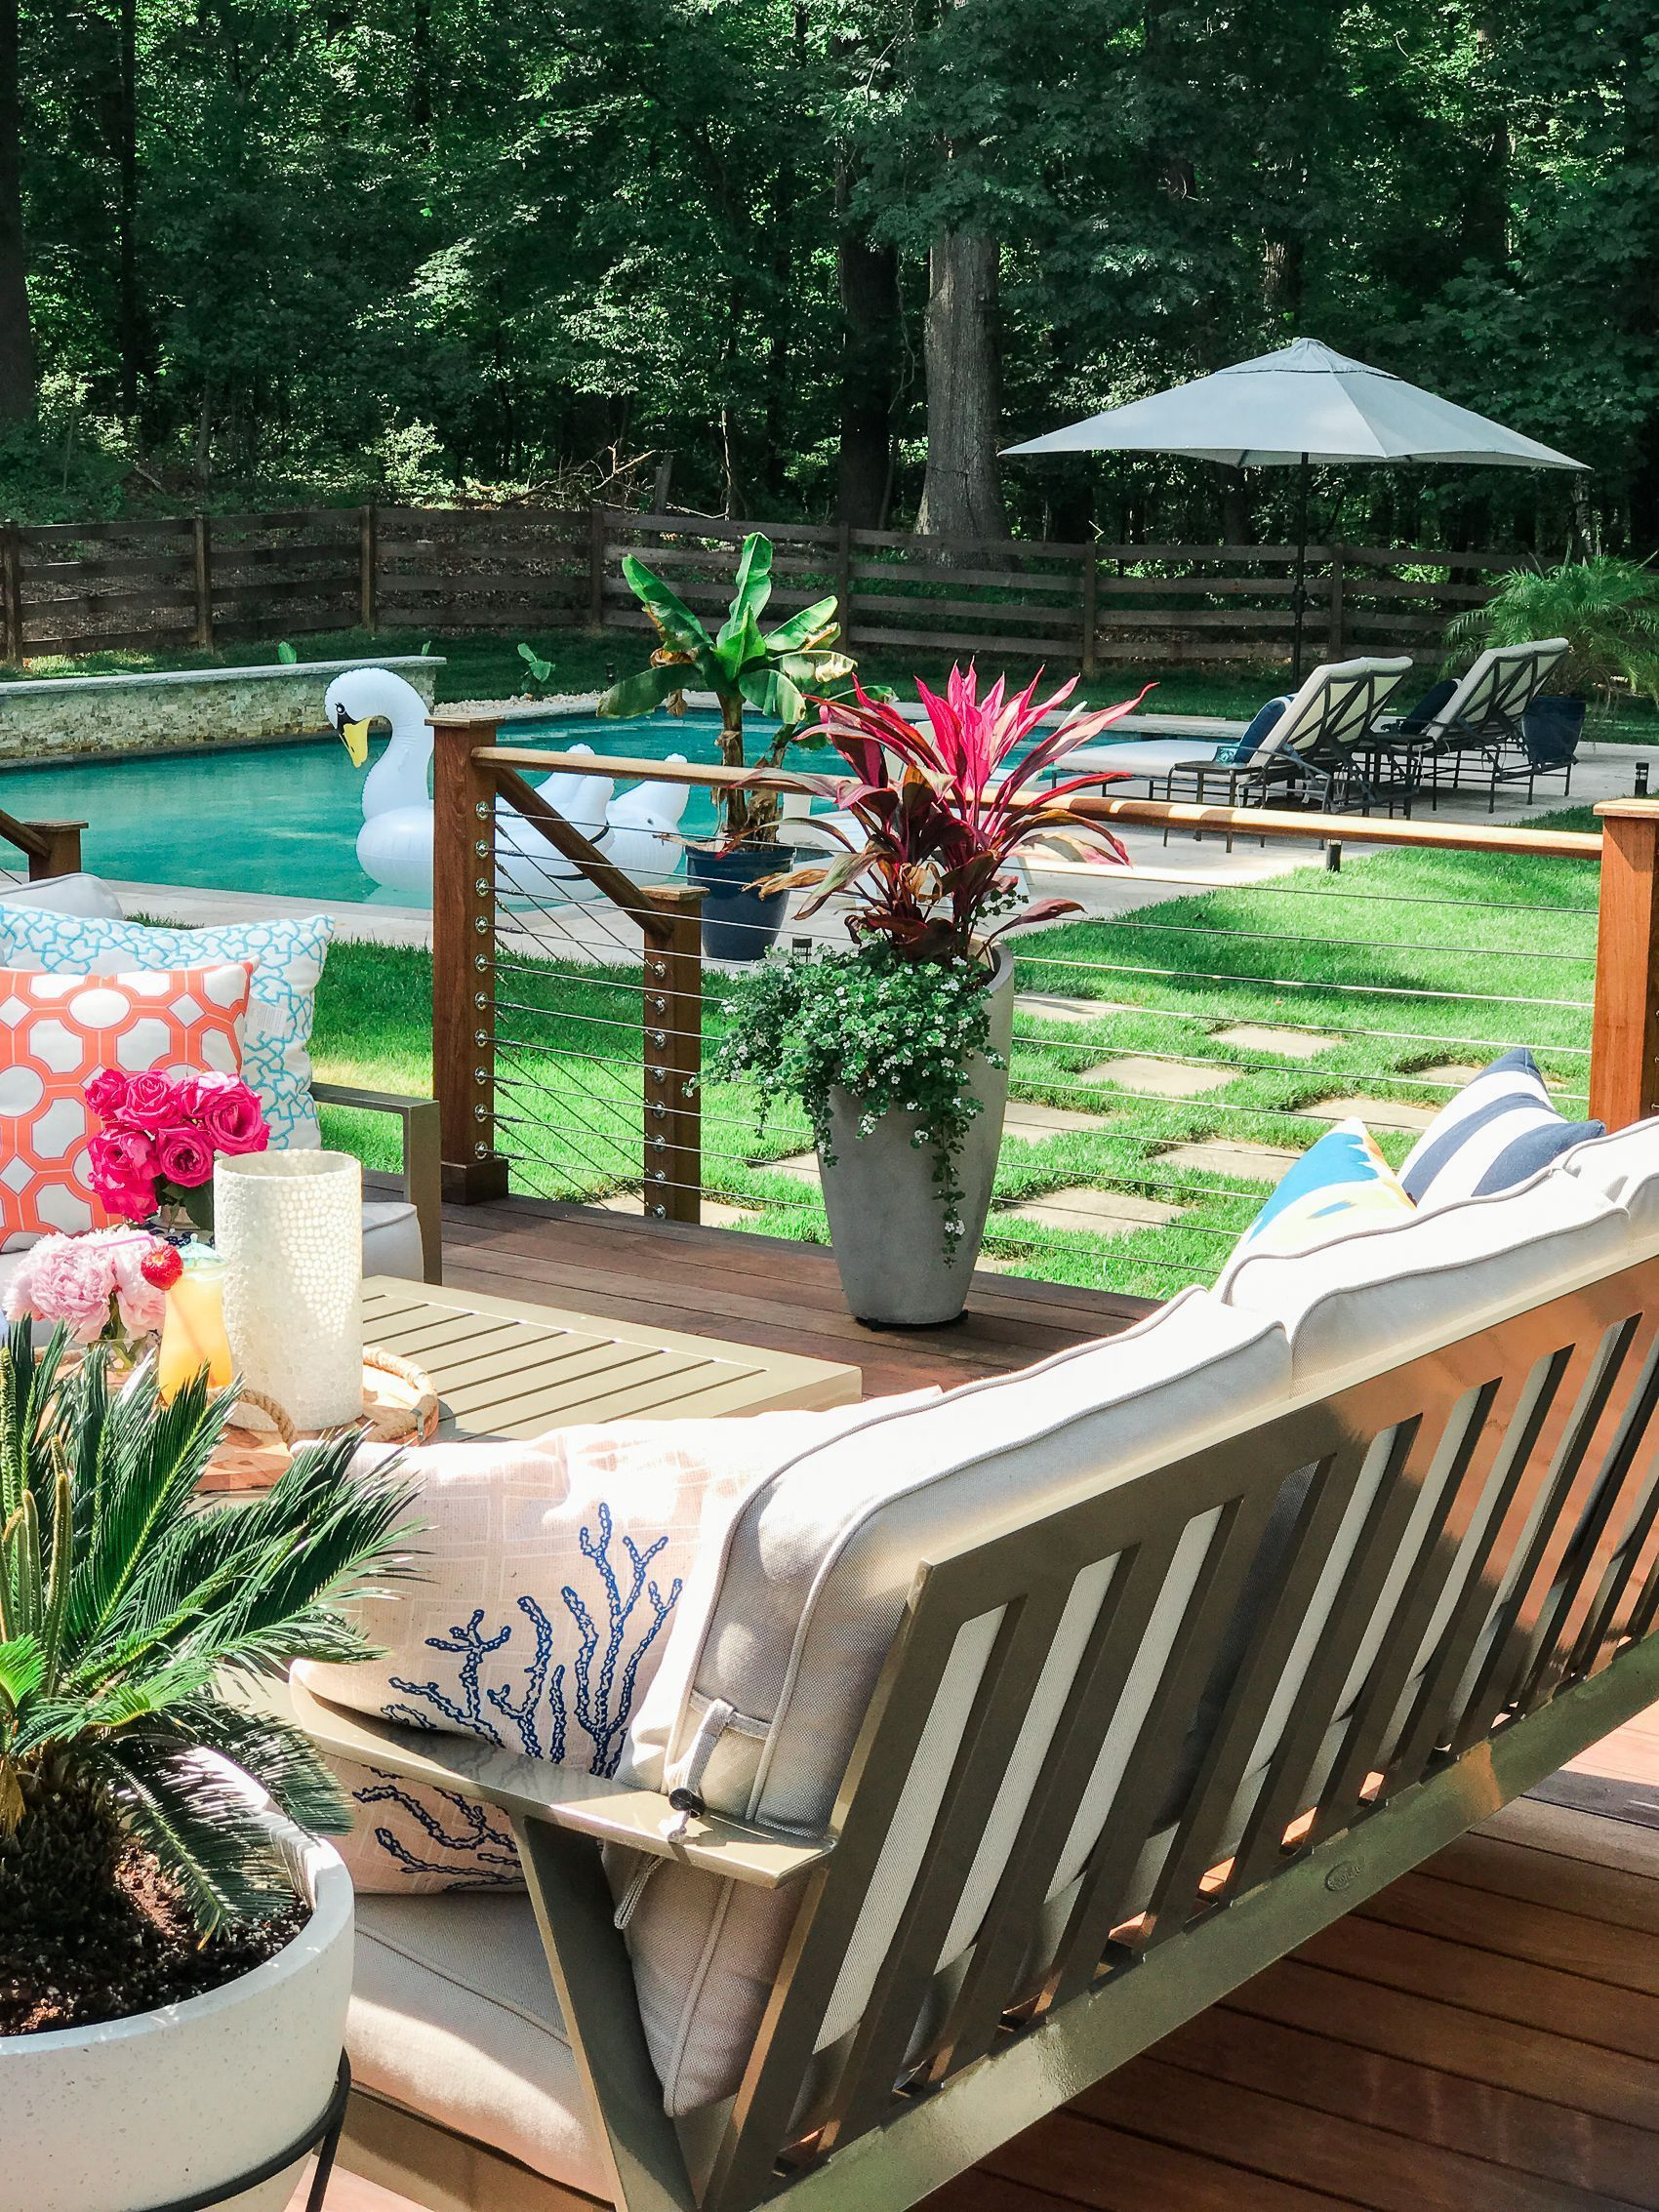 Luxury Pool Patio Furniture Layout Outdoor Living In 2020 Outdoor Patio Space Backyard Decor Outdoor Patio Decor